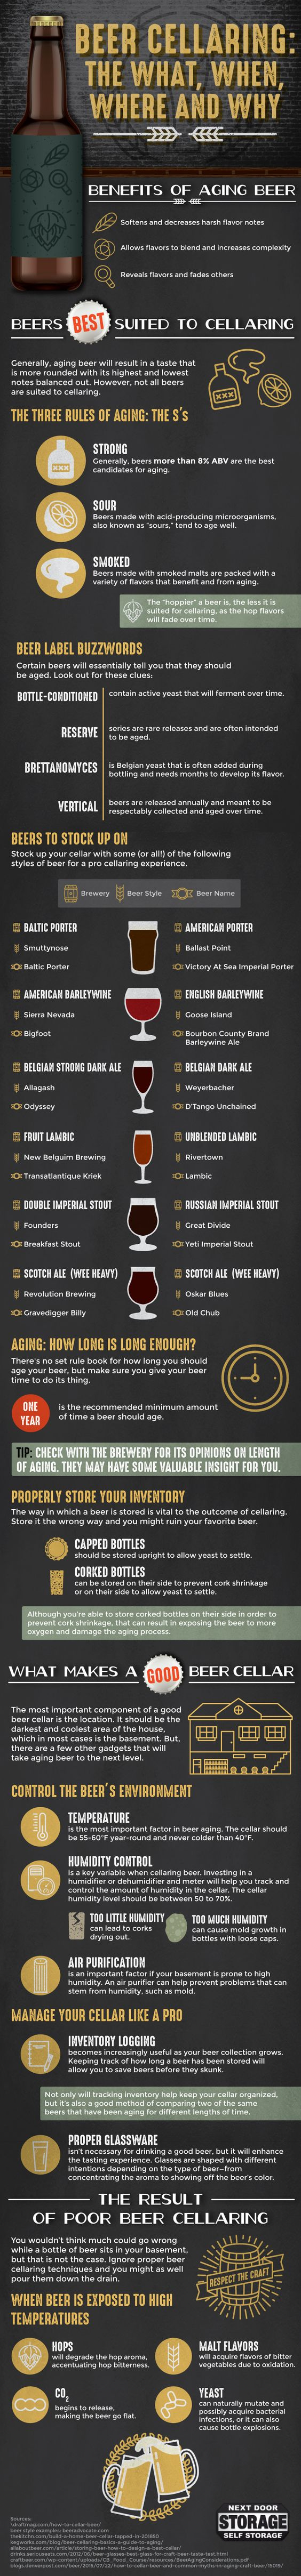 Beer Cellaring: The What, When, Where and Why #Infographic #Beer #Food